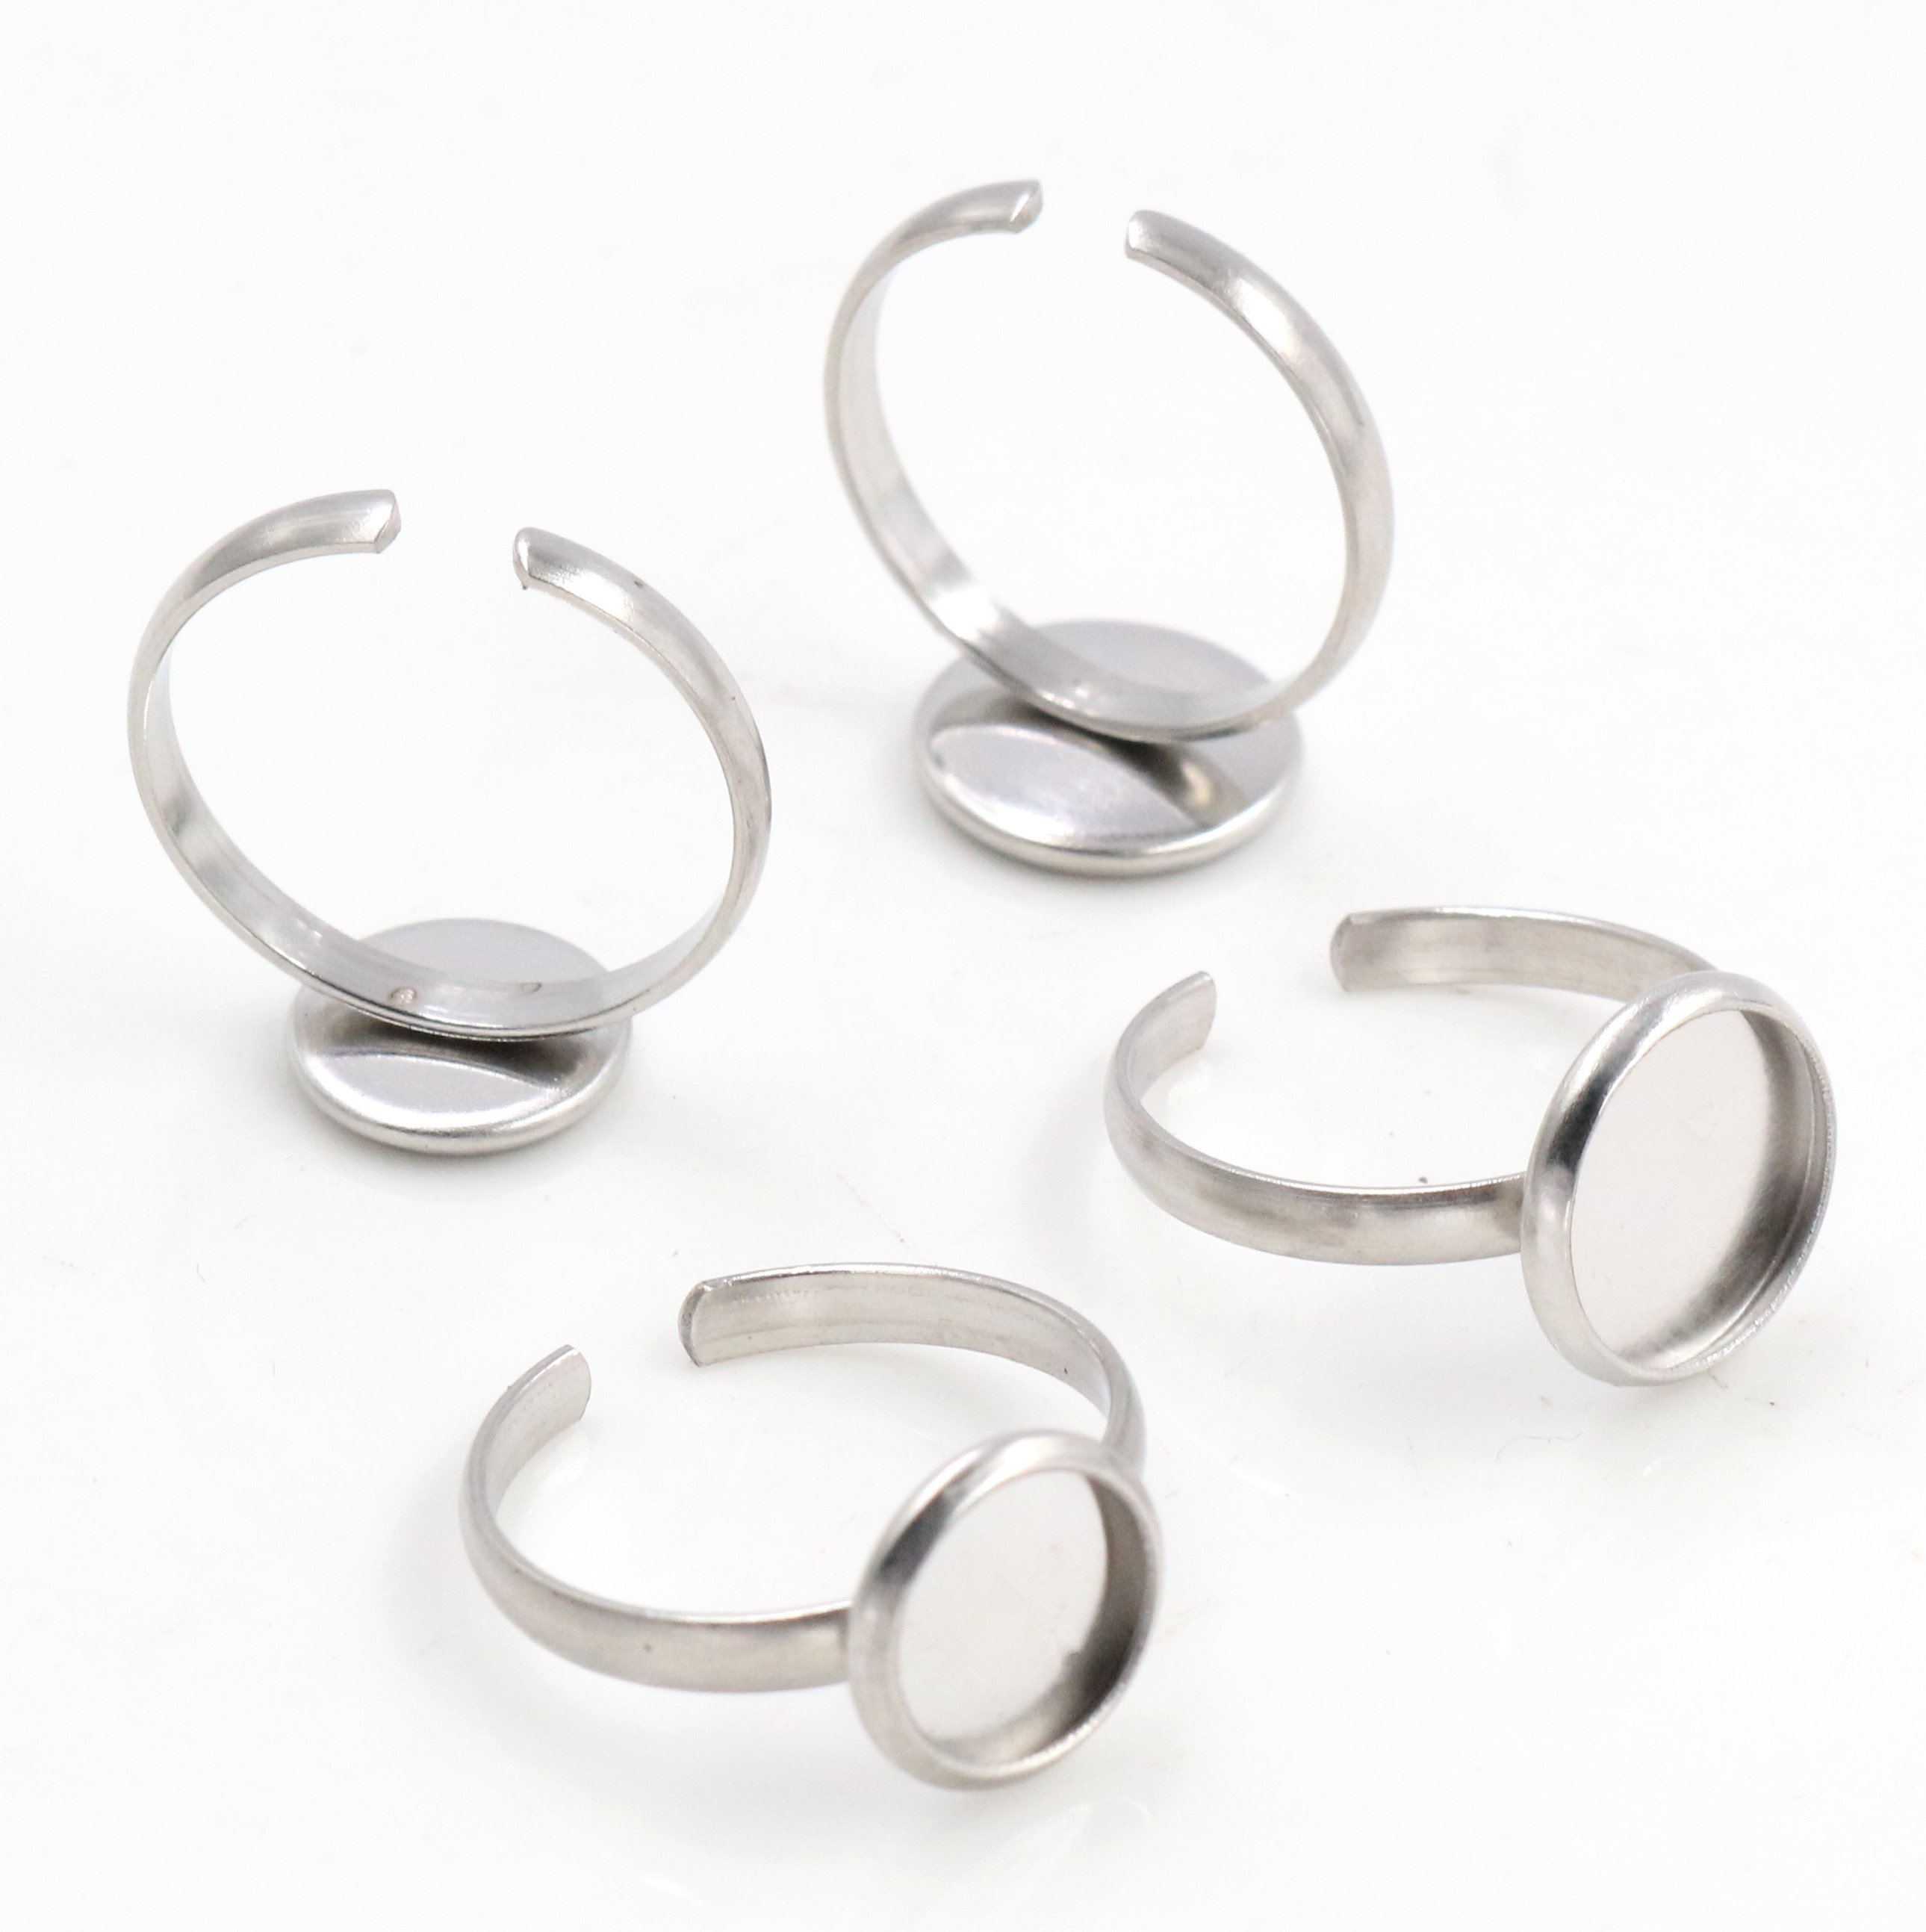 8mm 10mm 10pcs/Lot No Fade Stainless Steel Adjustable Ring Settings Blank/Base,Fit 8mm 10mm Glass Cabochons,Buttons;Ring Bezels